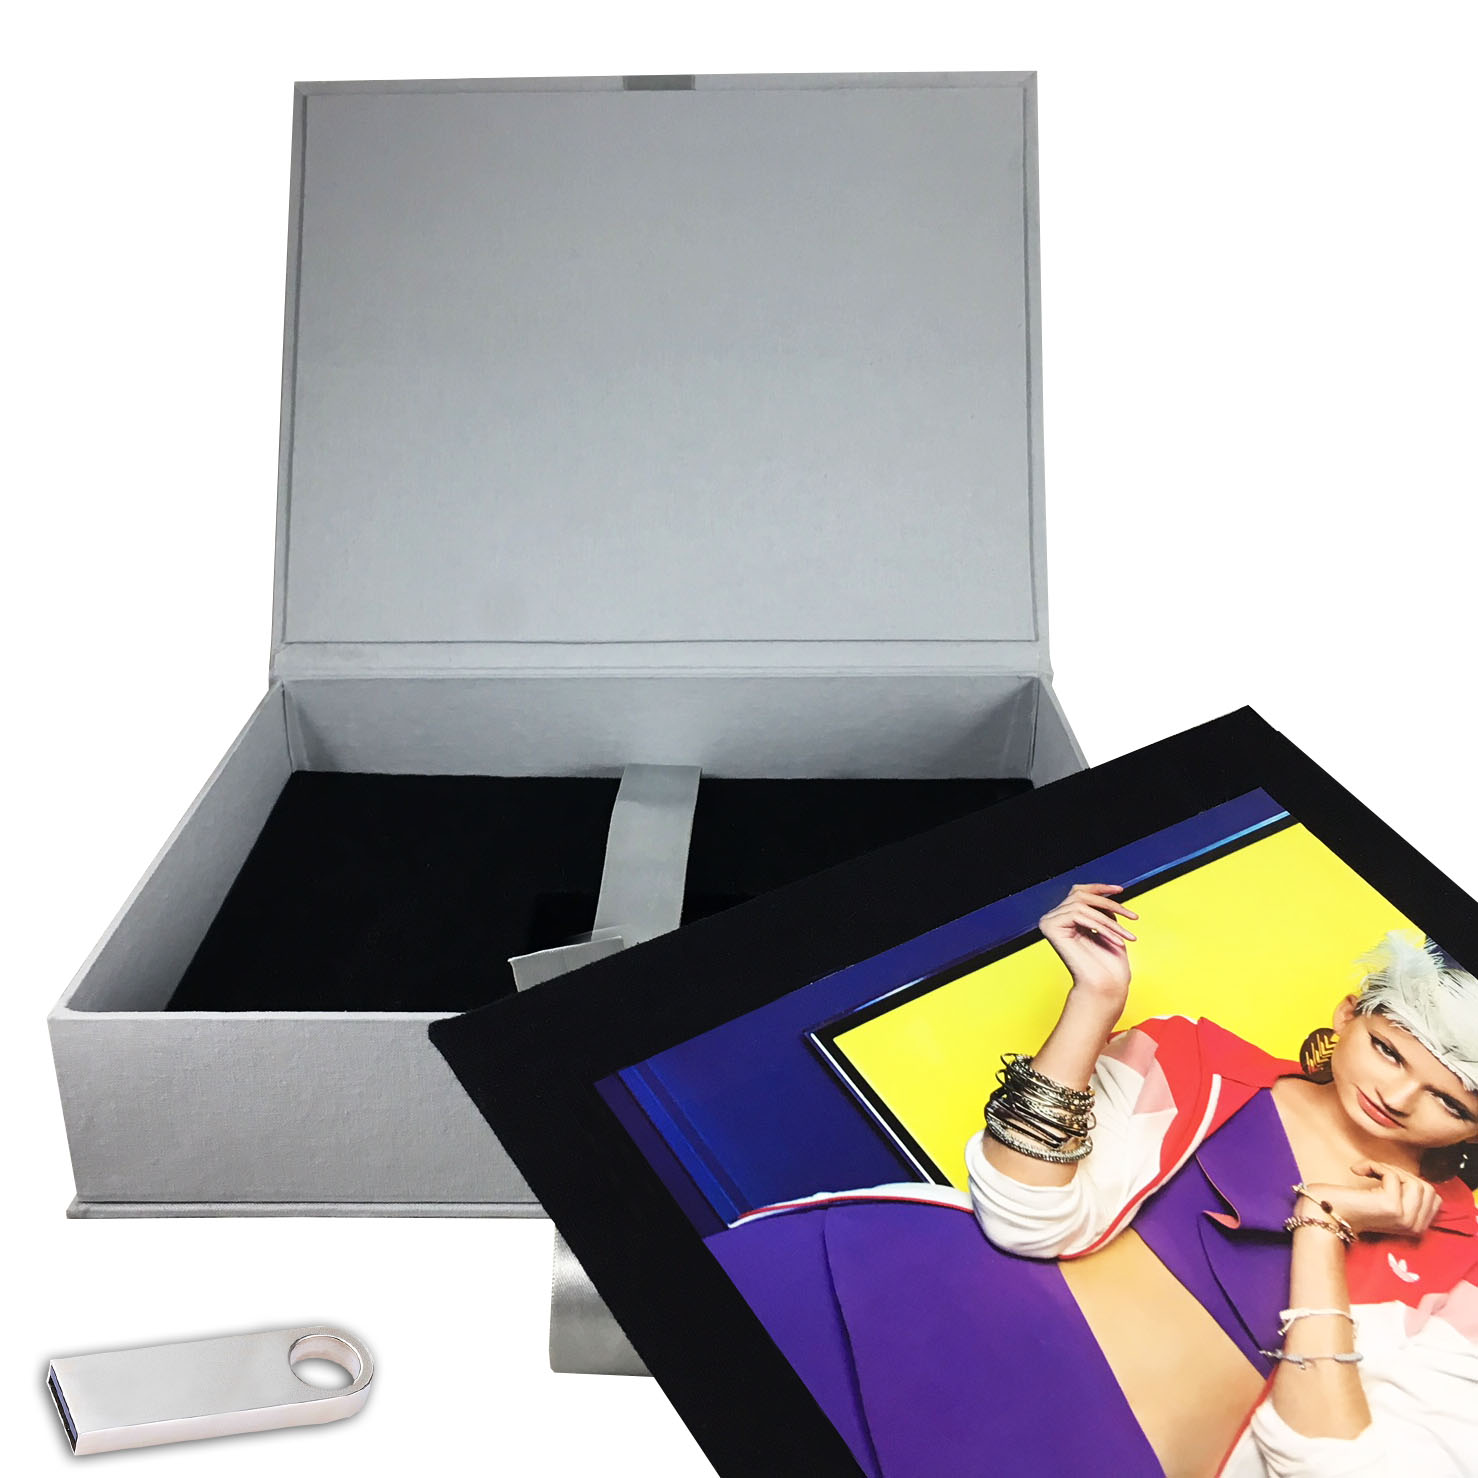 Linen photo box with USB slot